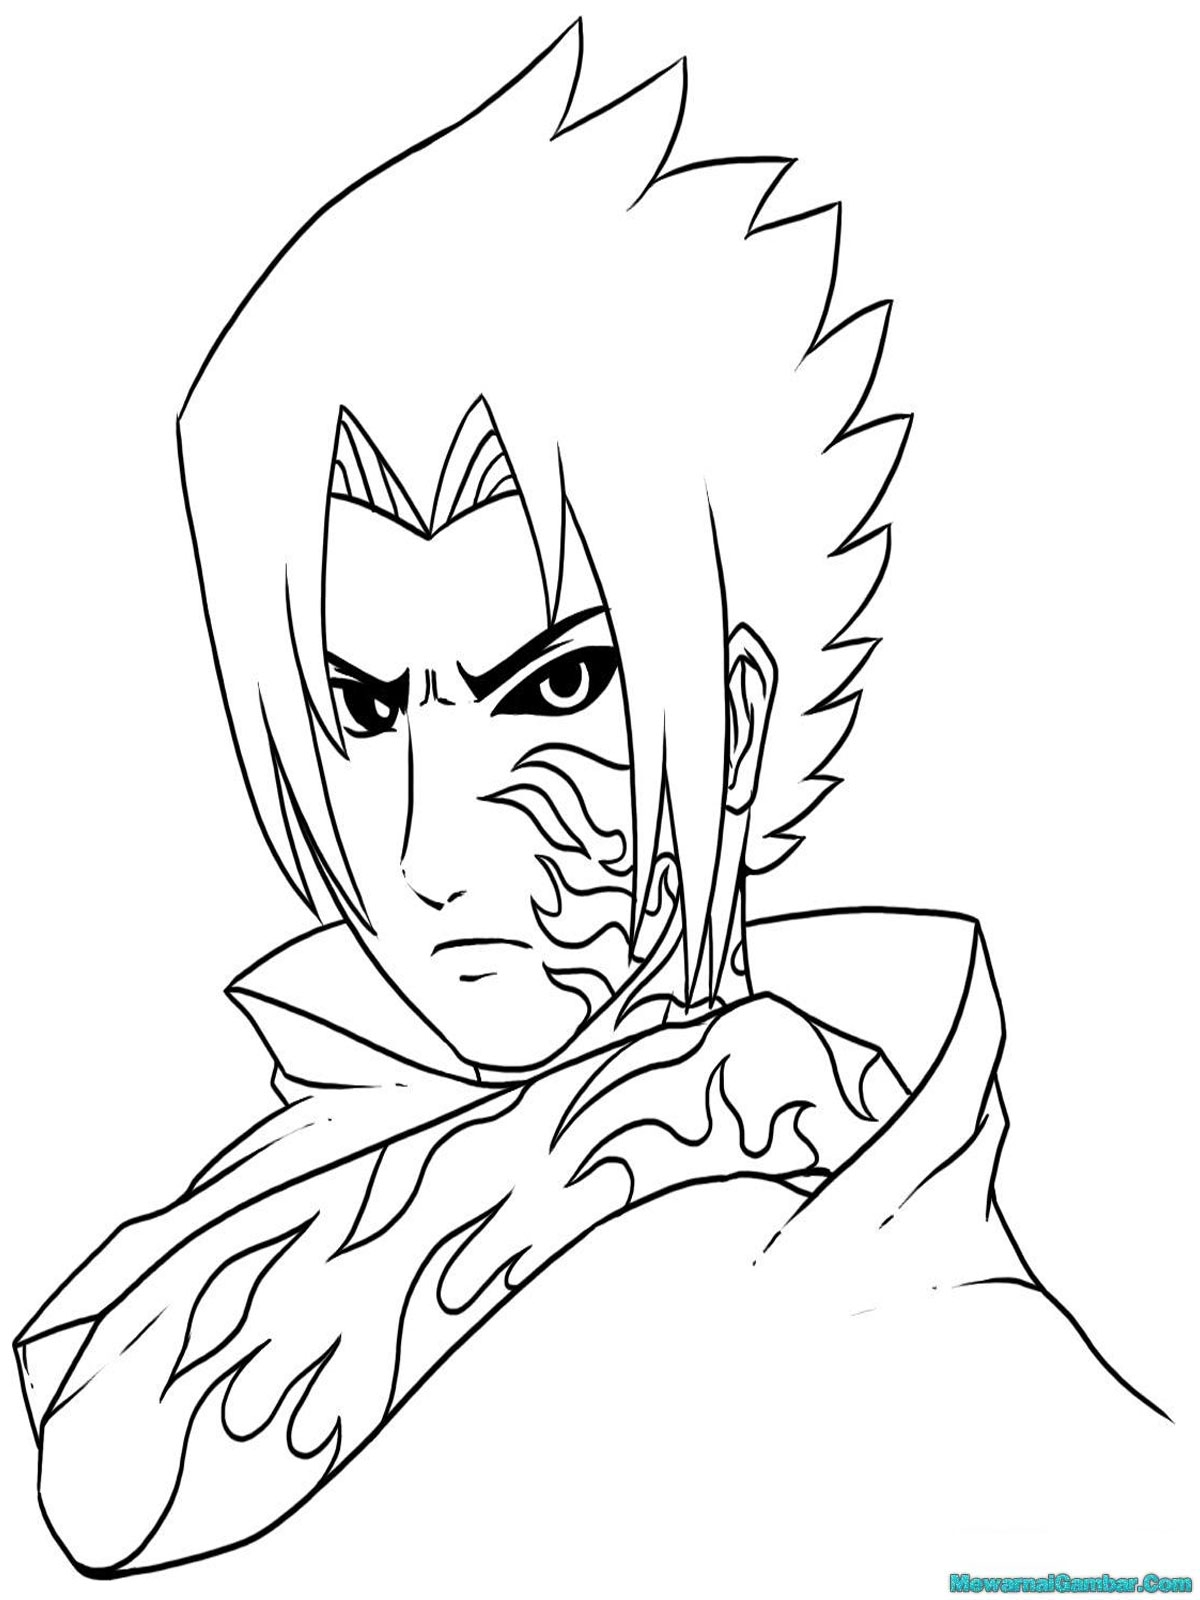 Gambar Pensil Naruto Sasuke Black And White